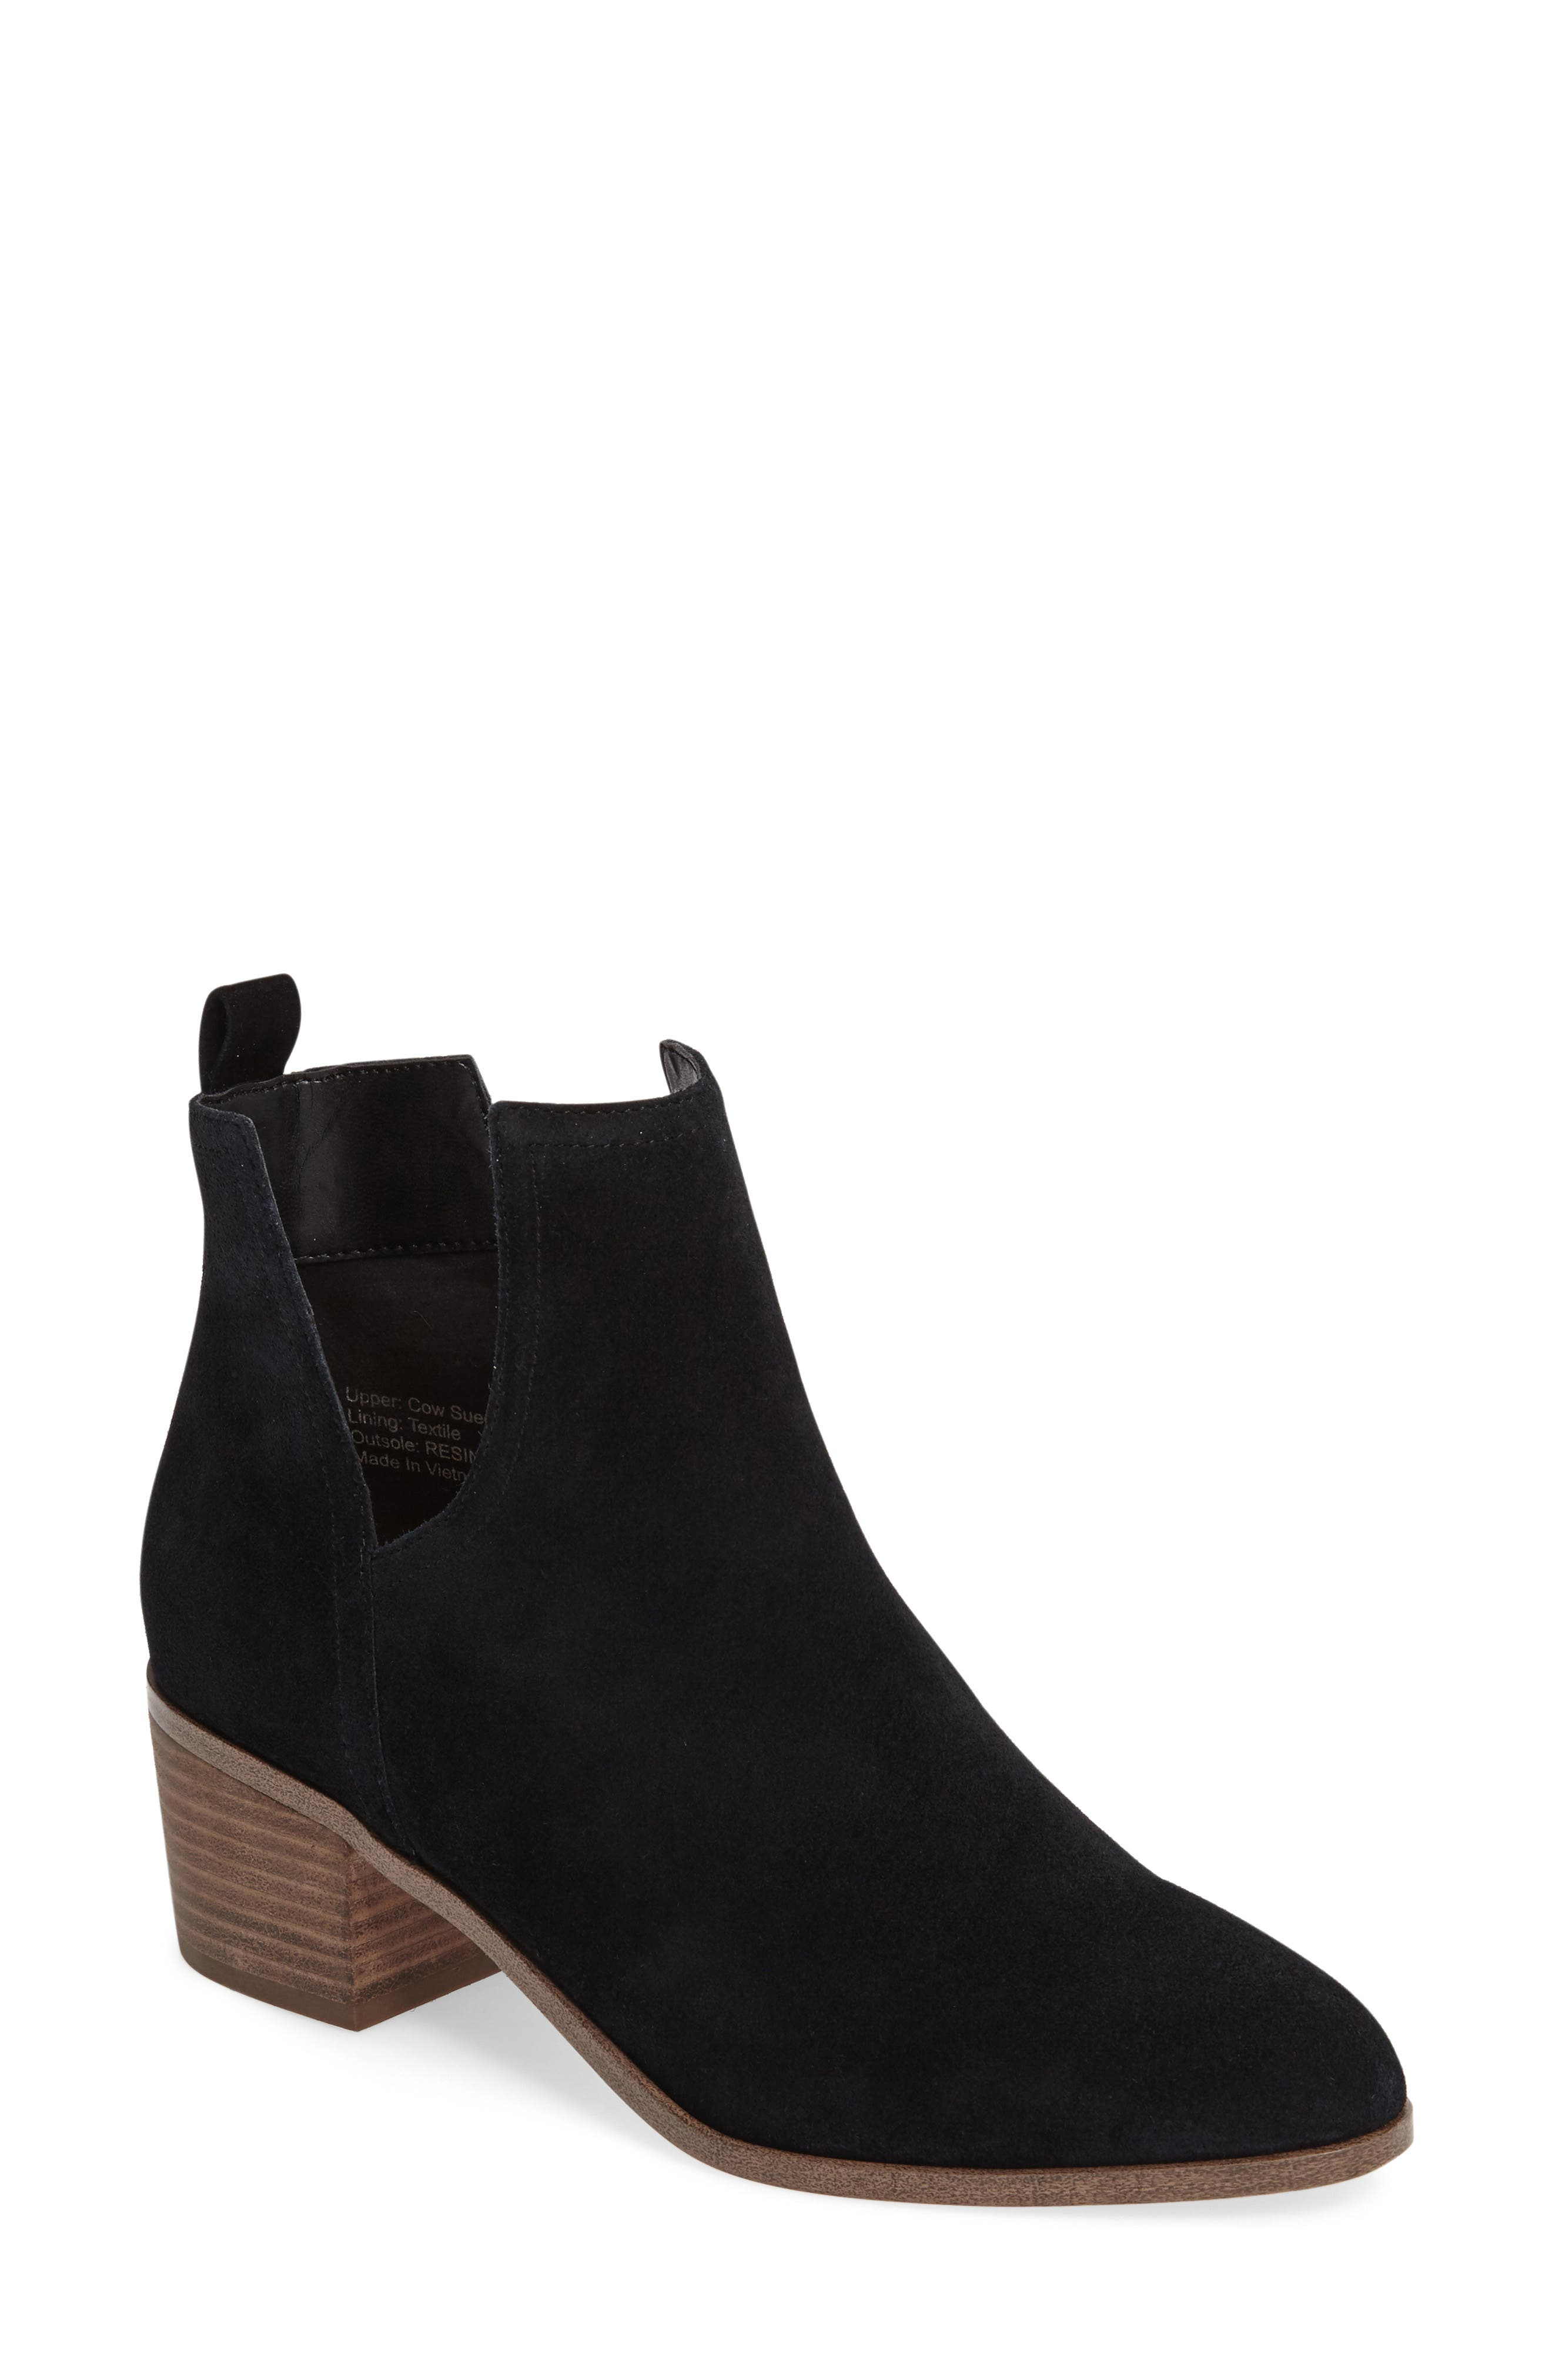 Madrid Bootie,                         Main,                         color, 001